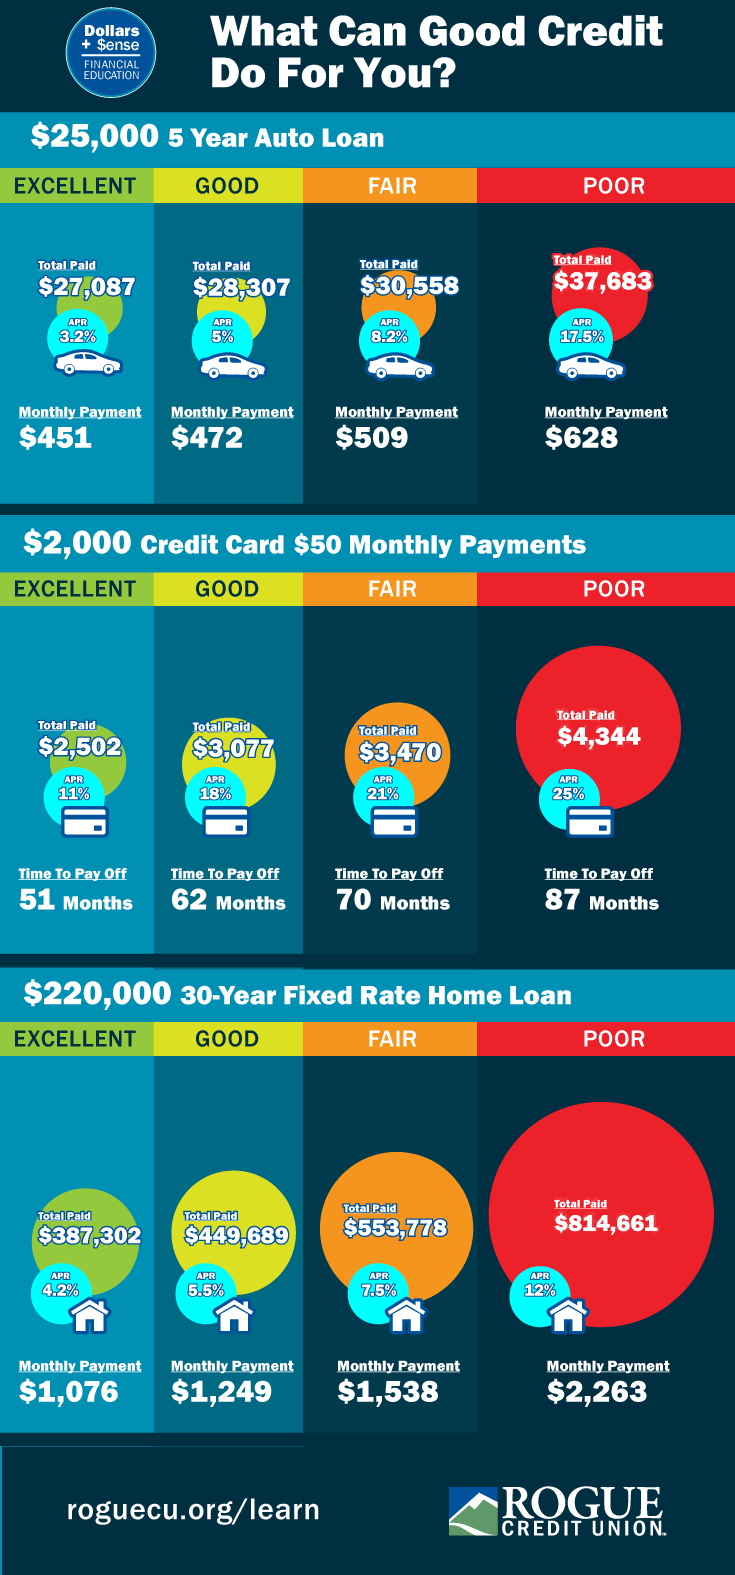 What Can Good Credit Do For You